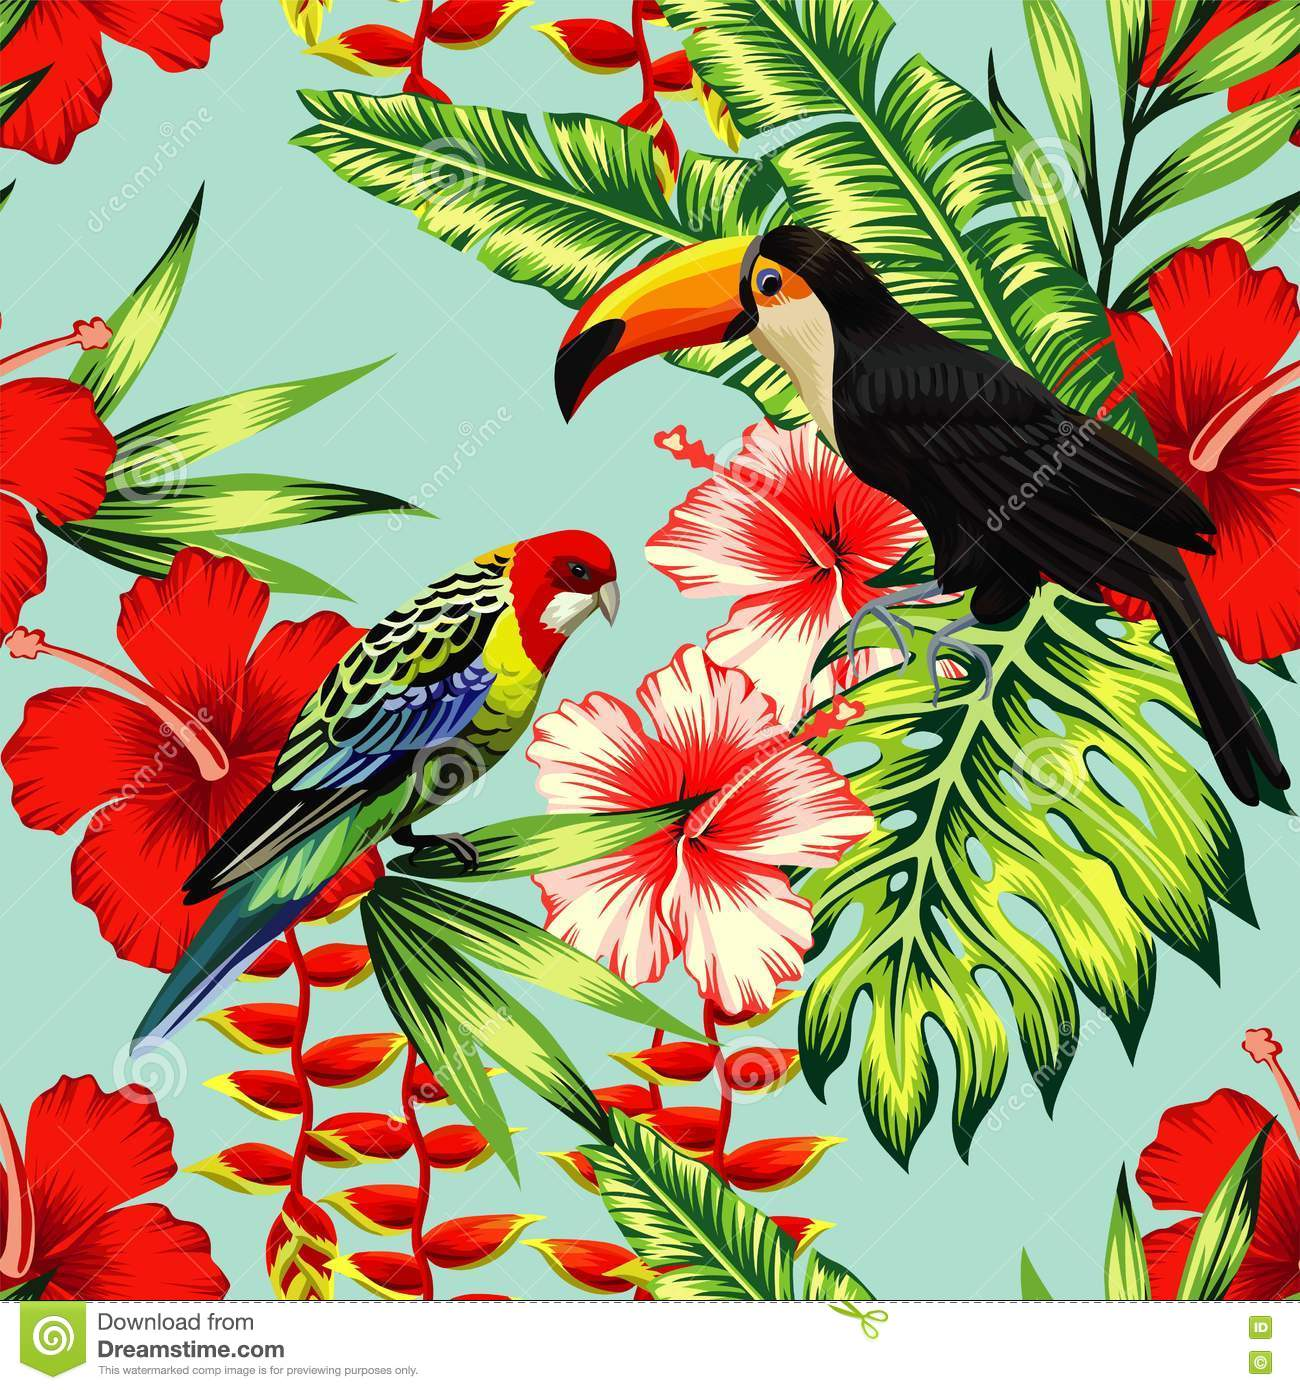 wallpaper tropical birds and foliage - photo #5